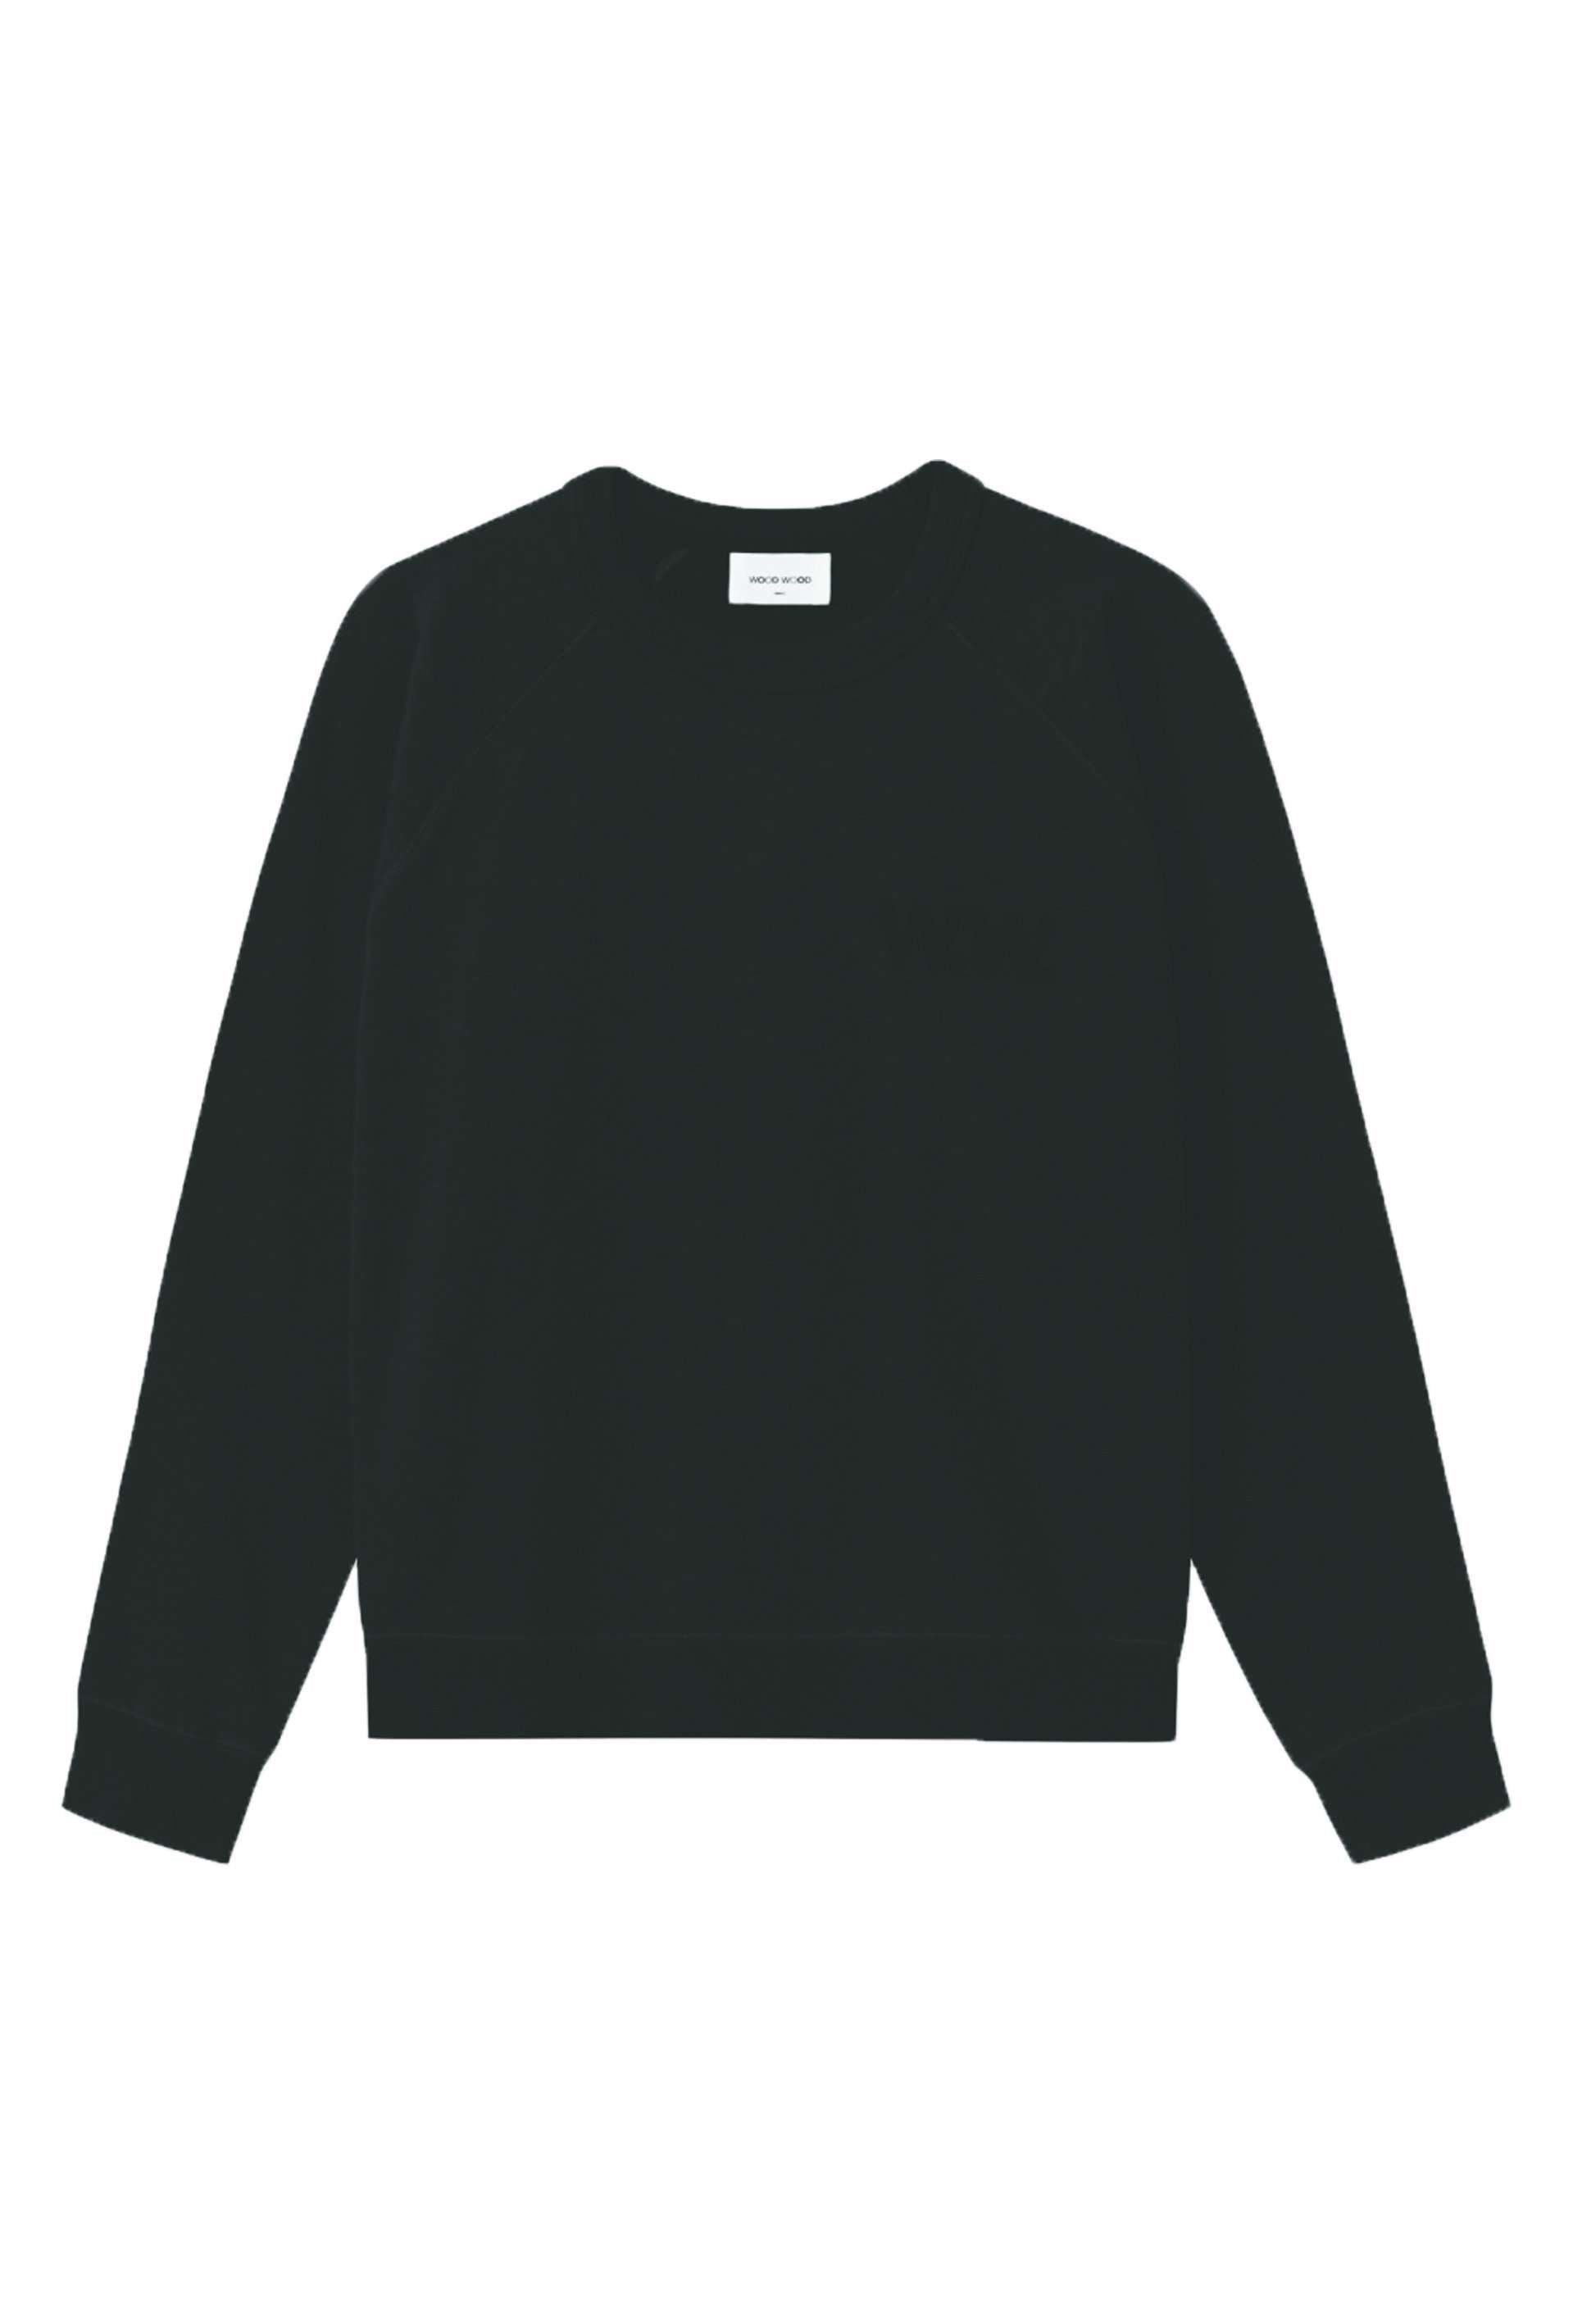 Jerri Sweatshirt - Black - Wood Wood - Sort L